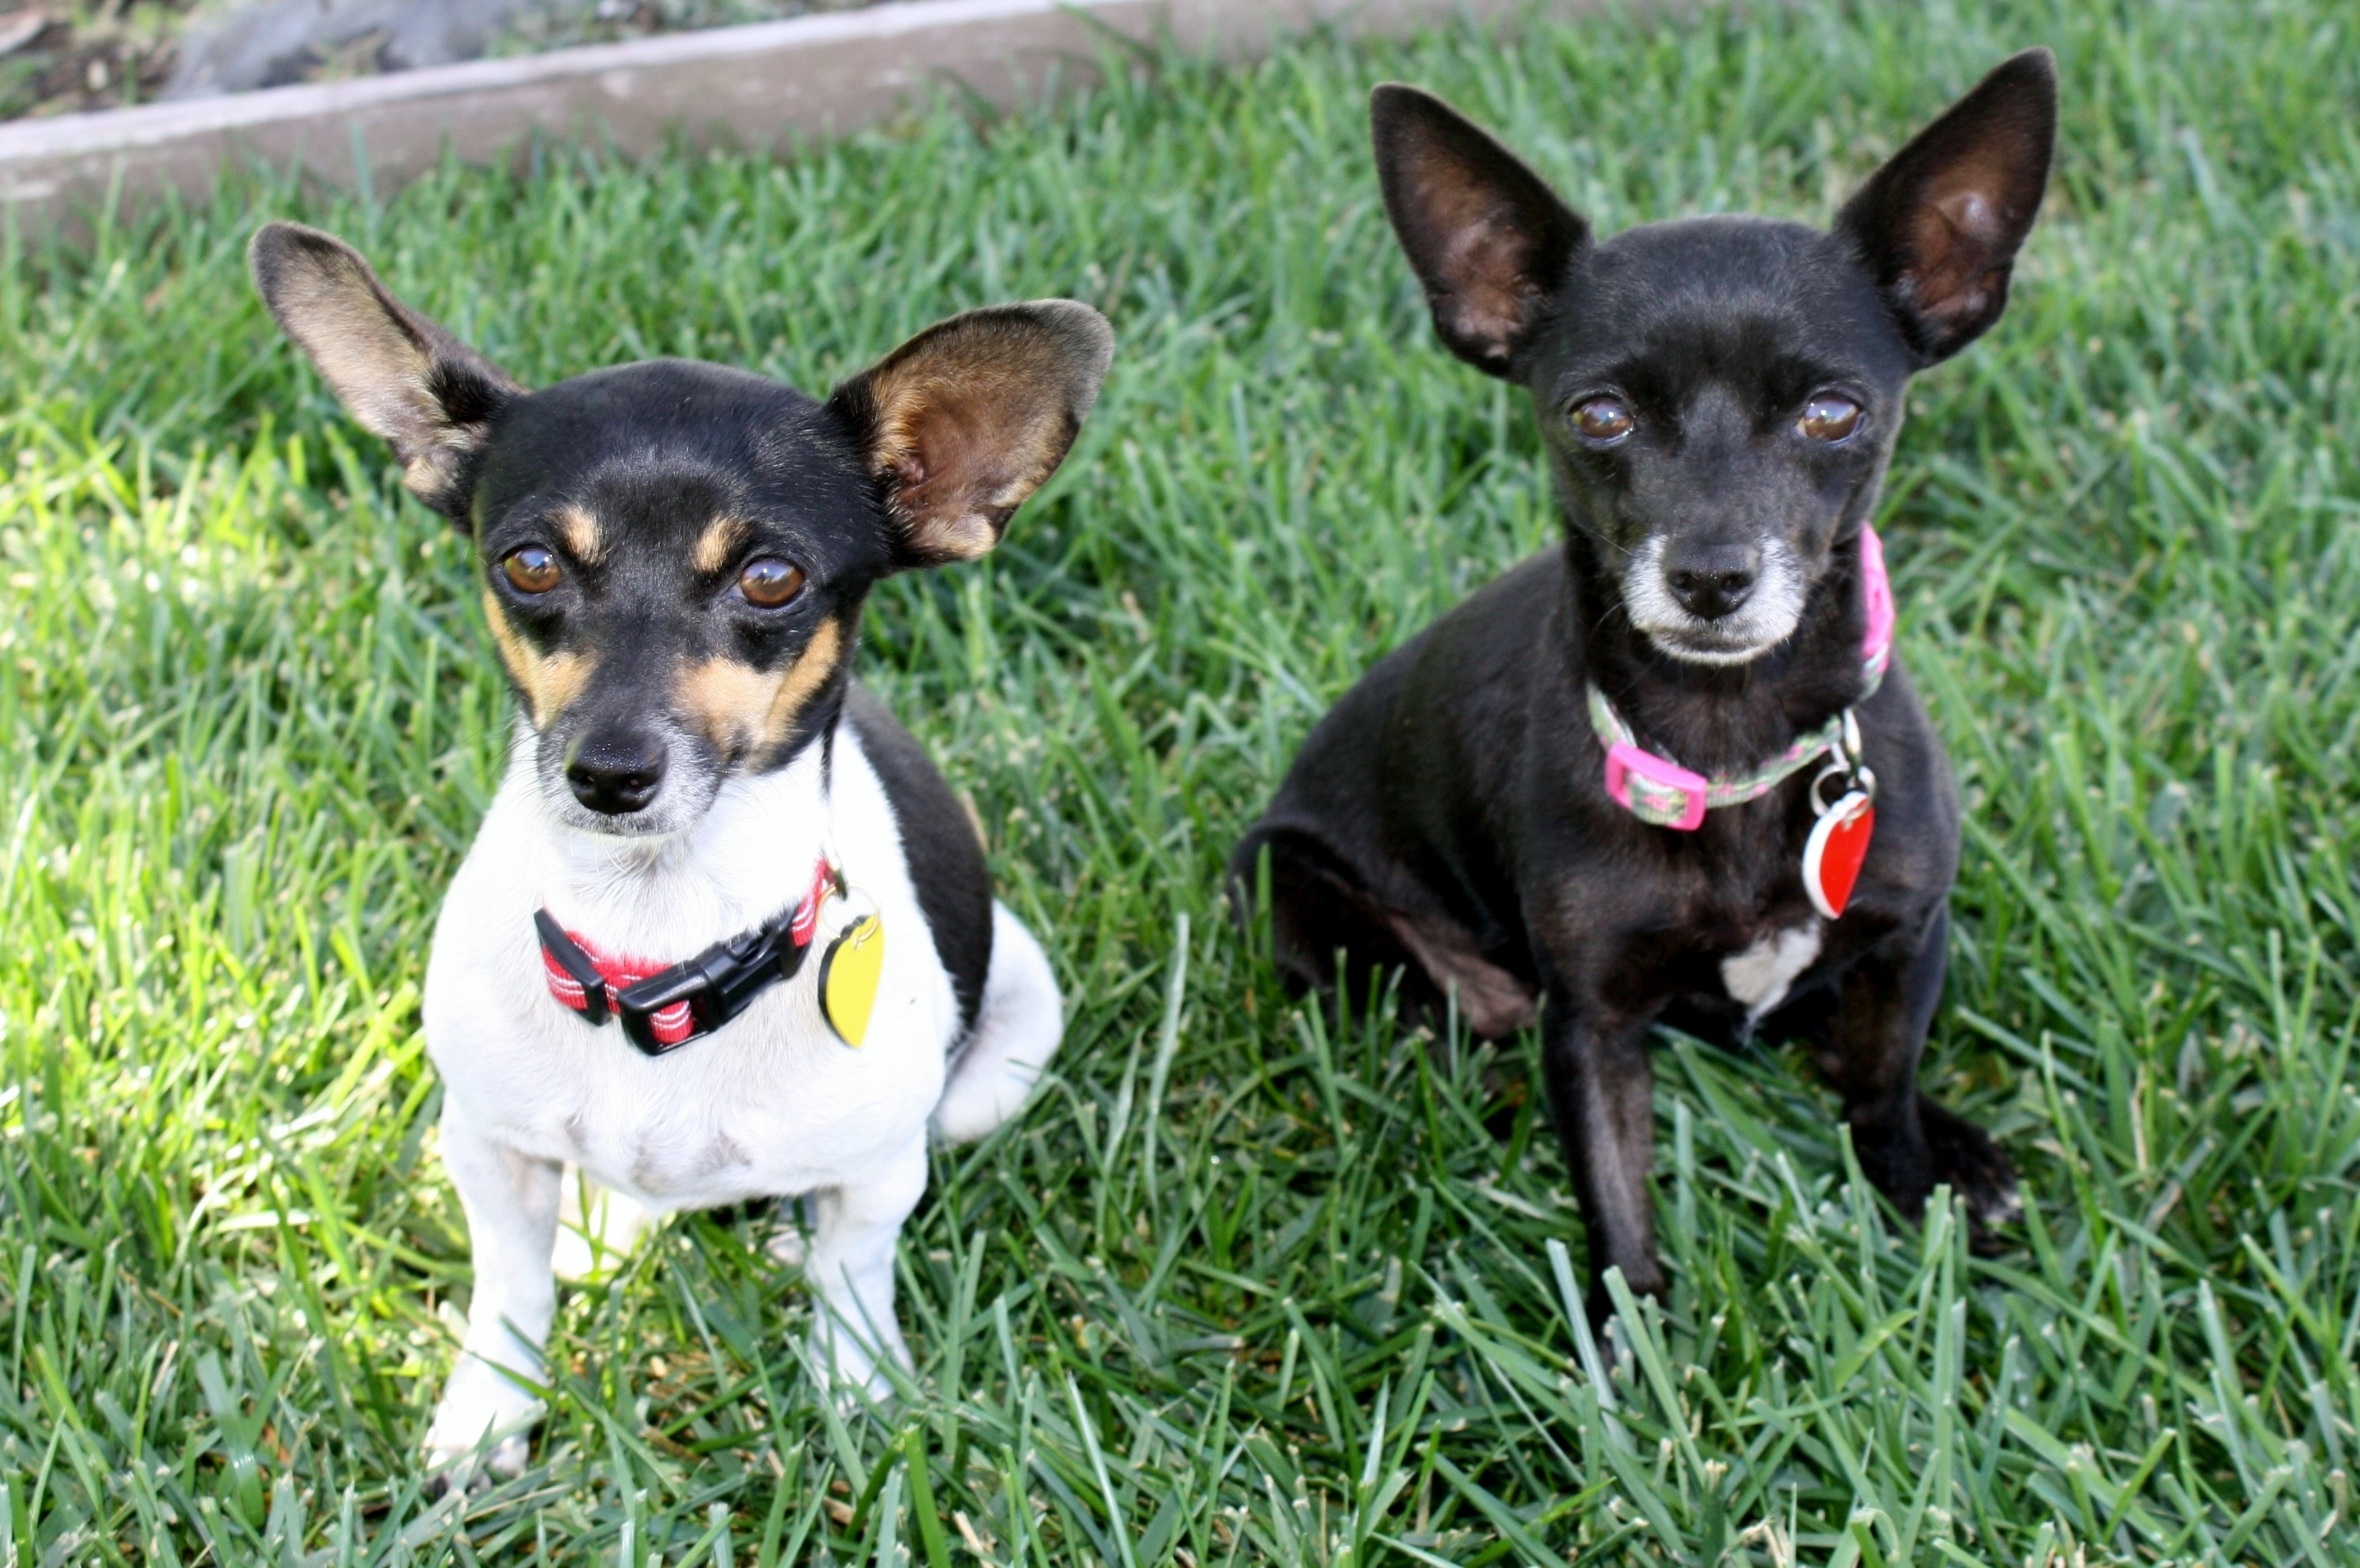 Agatha and Allie - Bonded pairs get along and keep each other company!